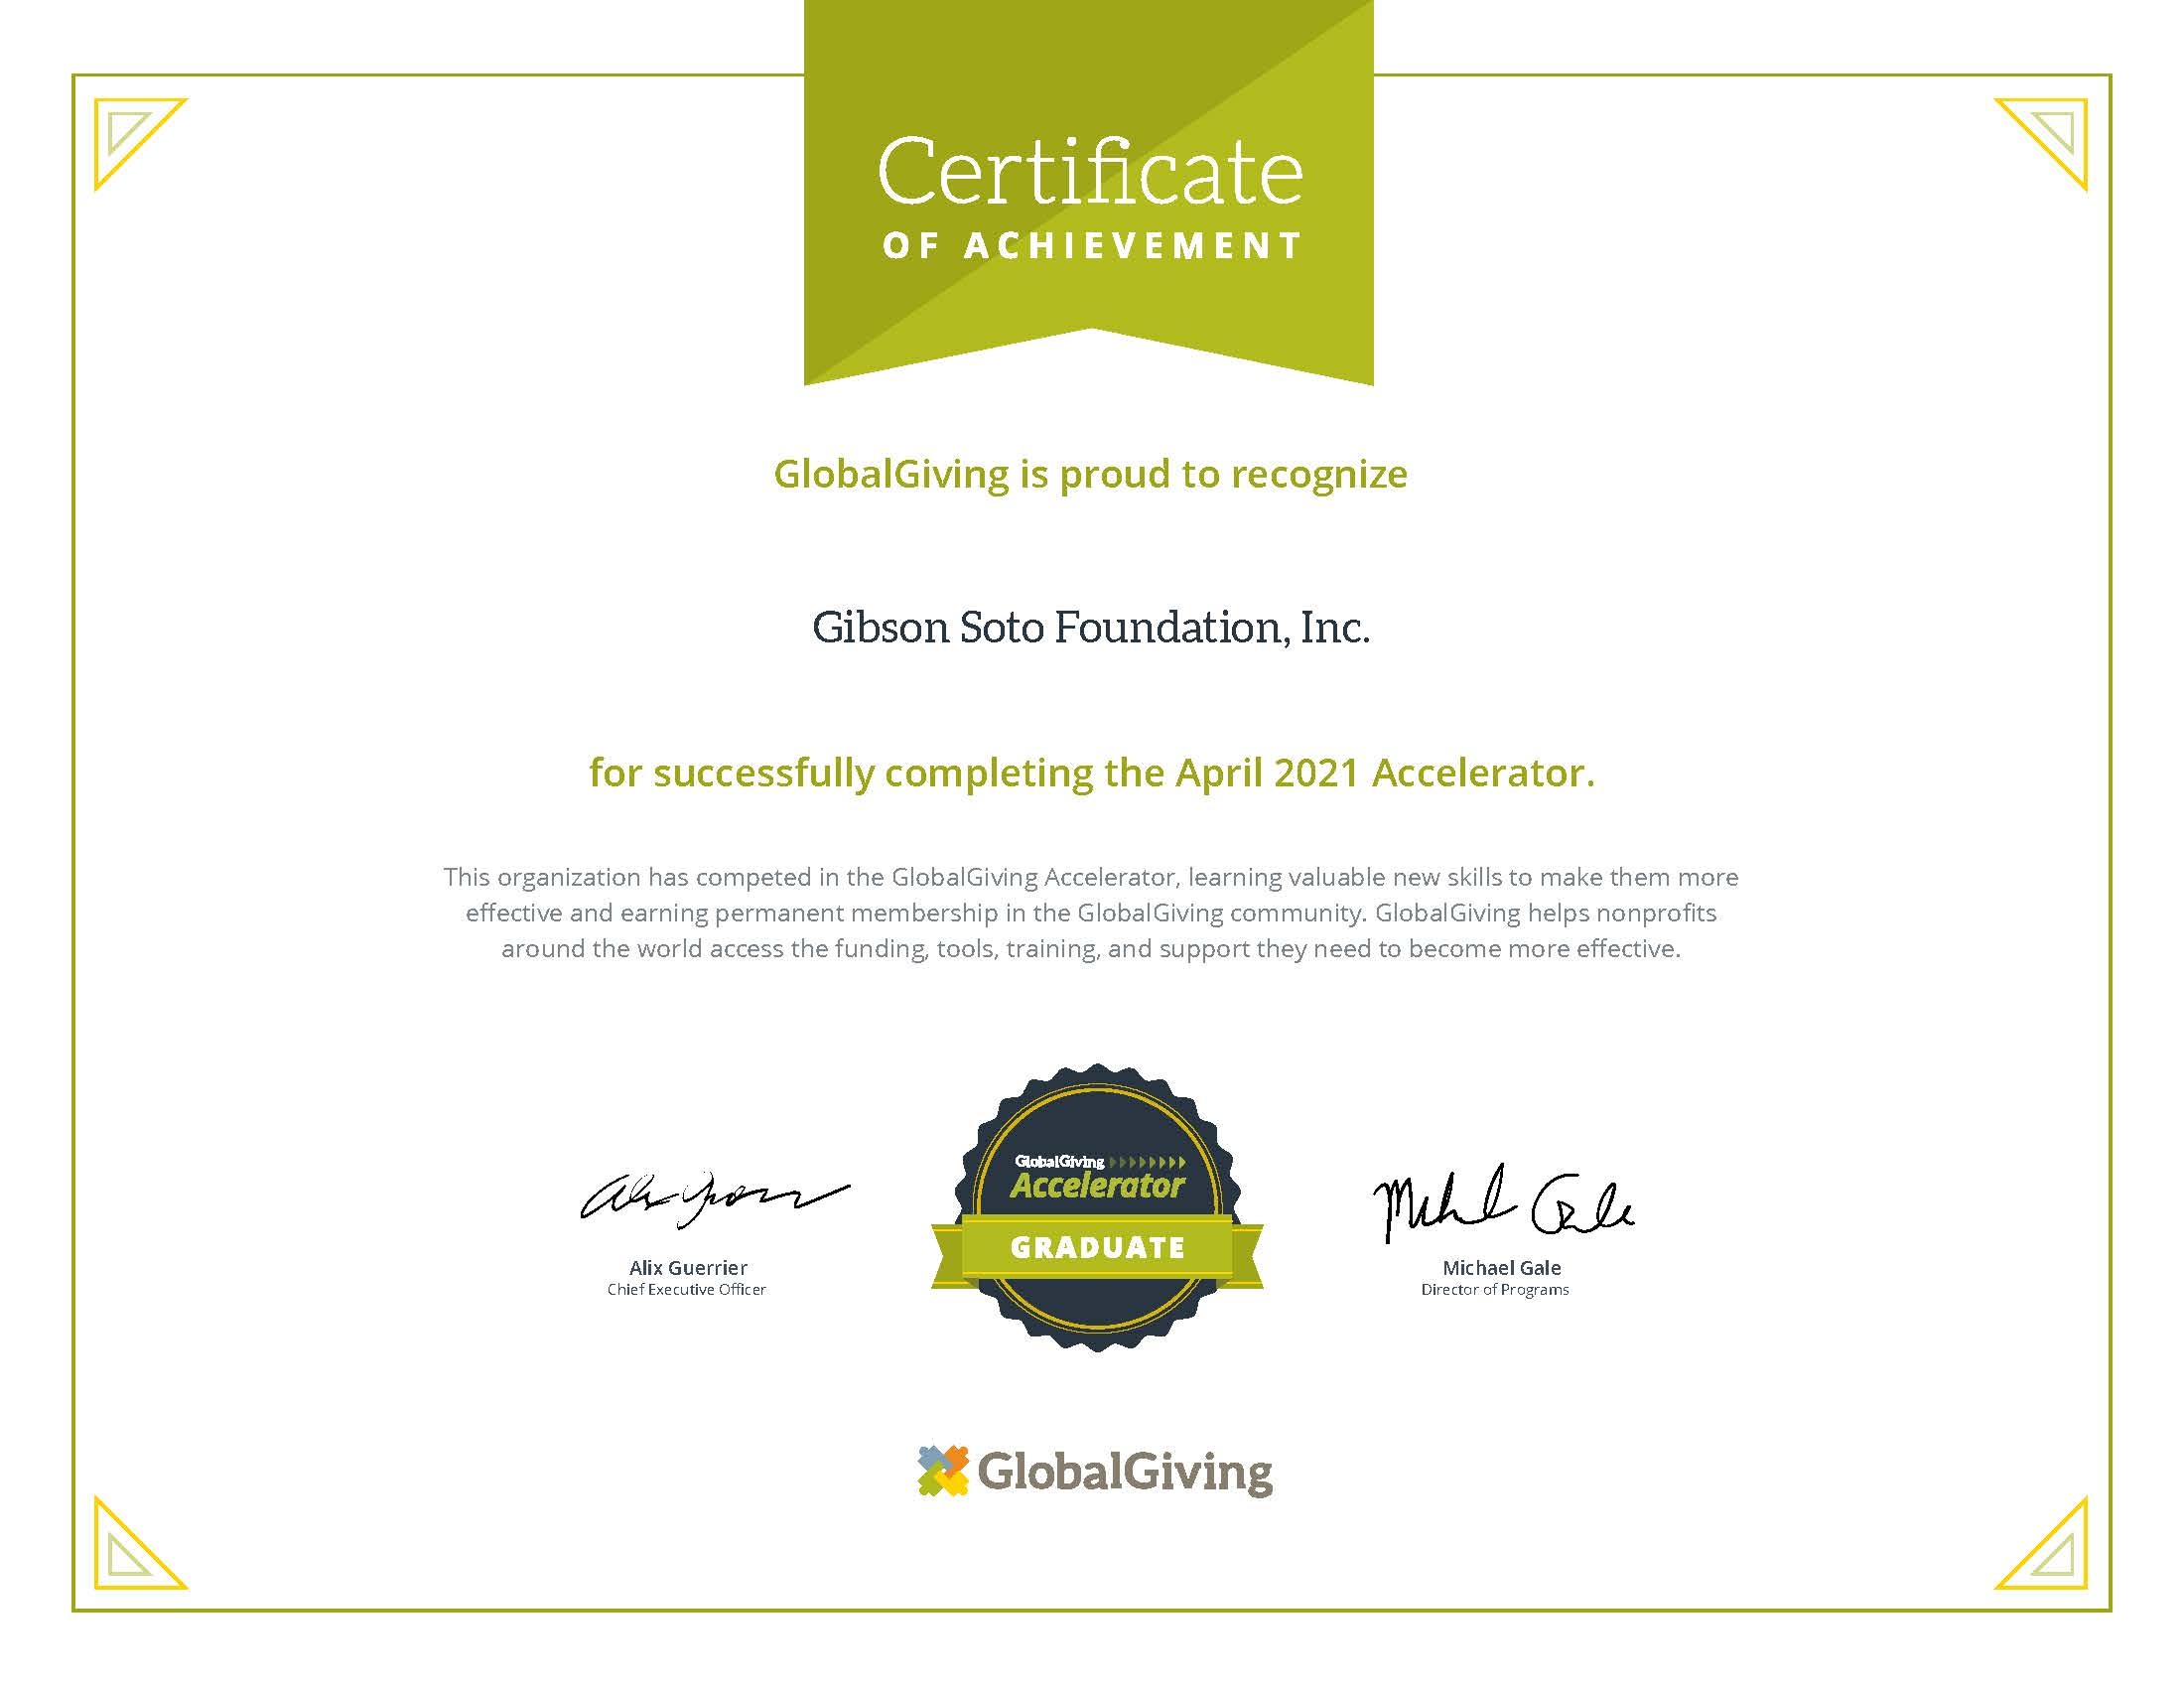 Gibson Soto Foundation is now recognized as partners of #GlobalGiving!